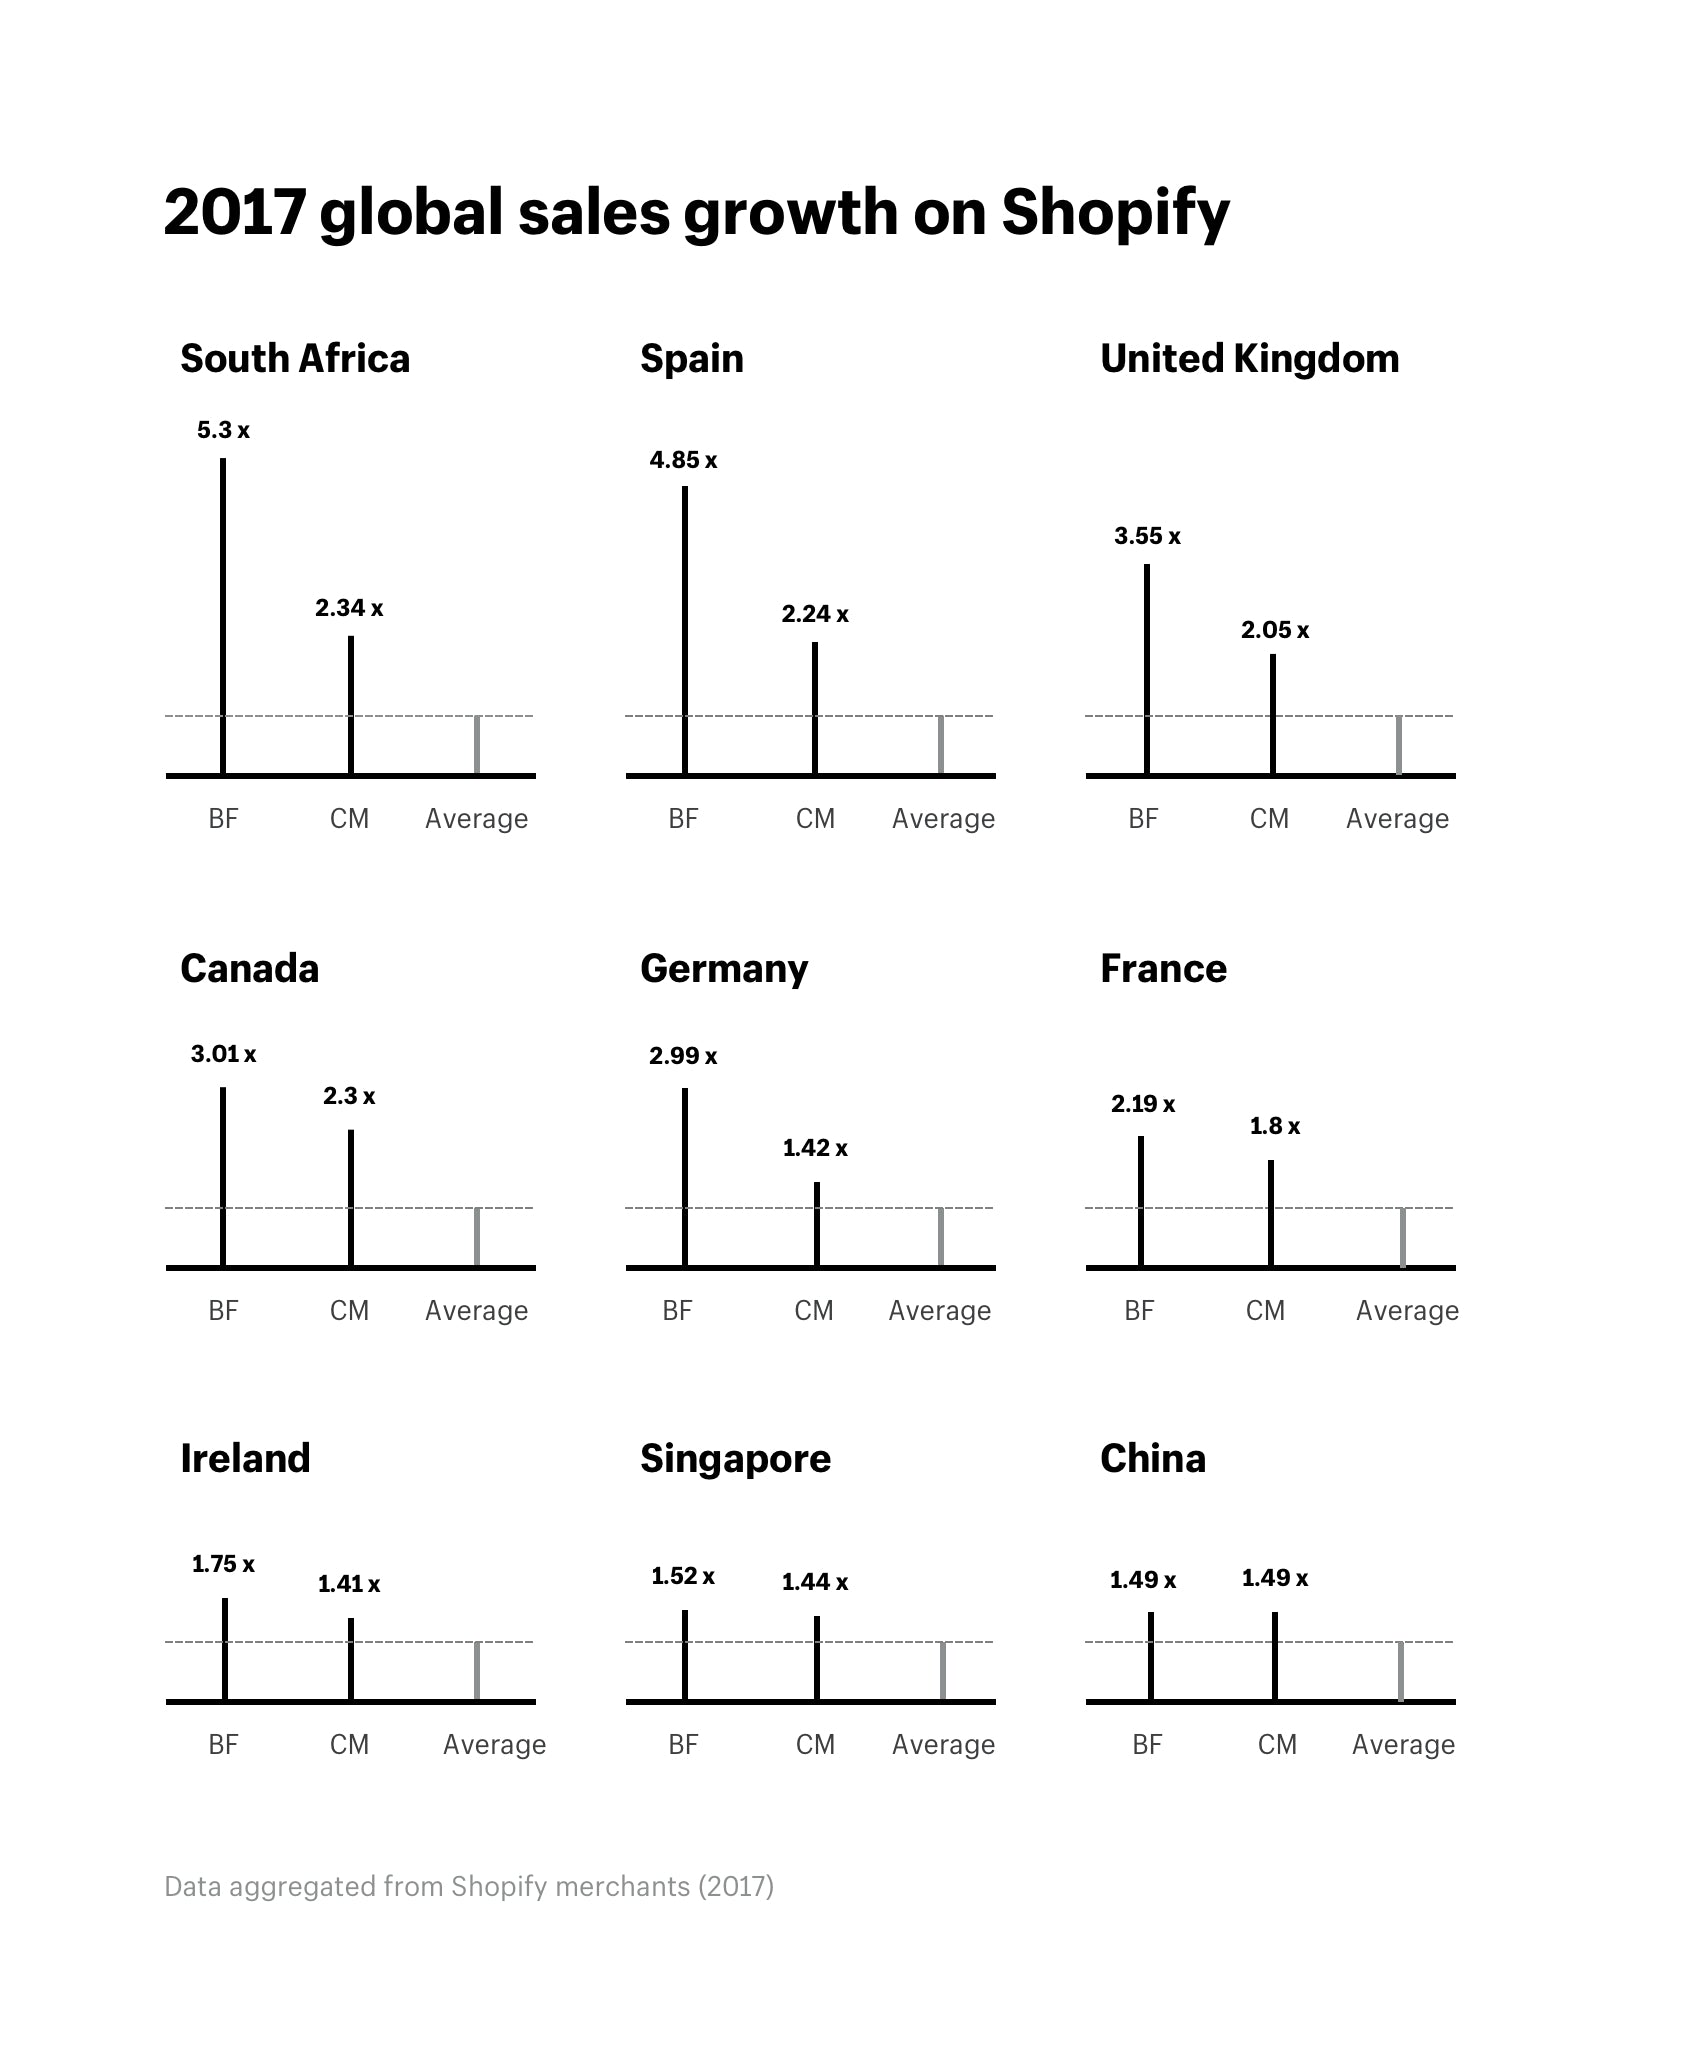 2017 global sales growth on Shopify